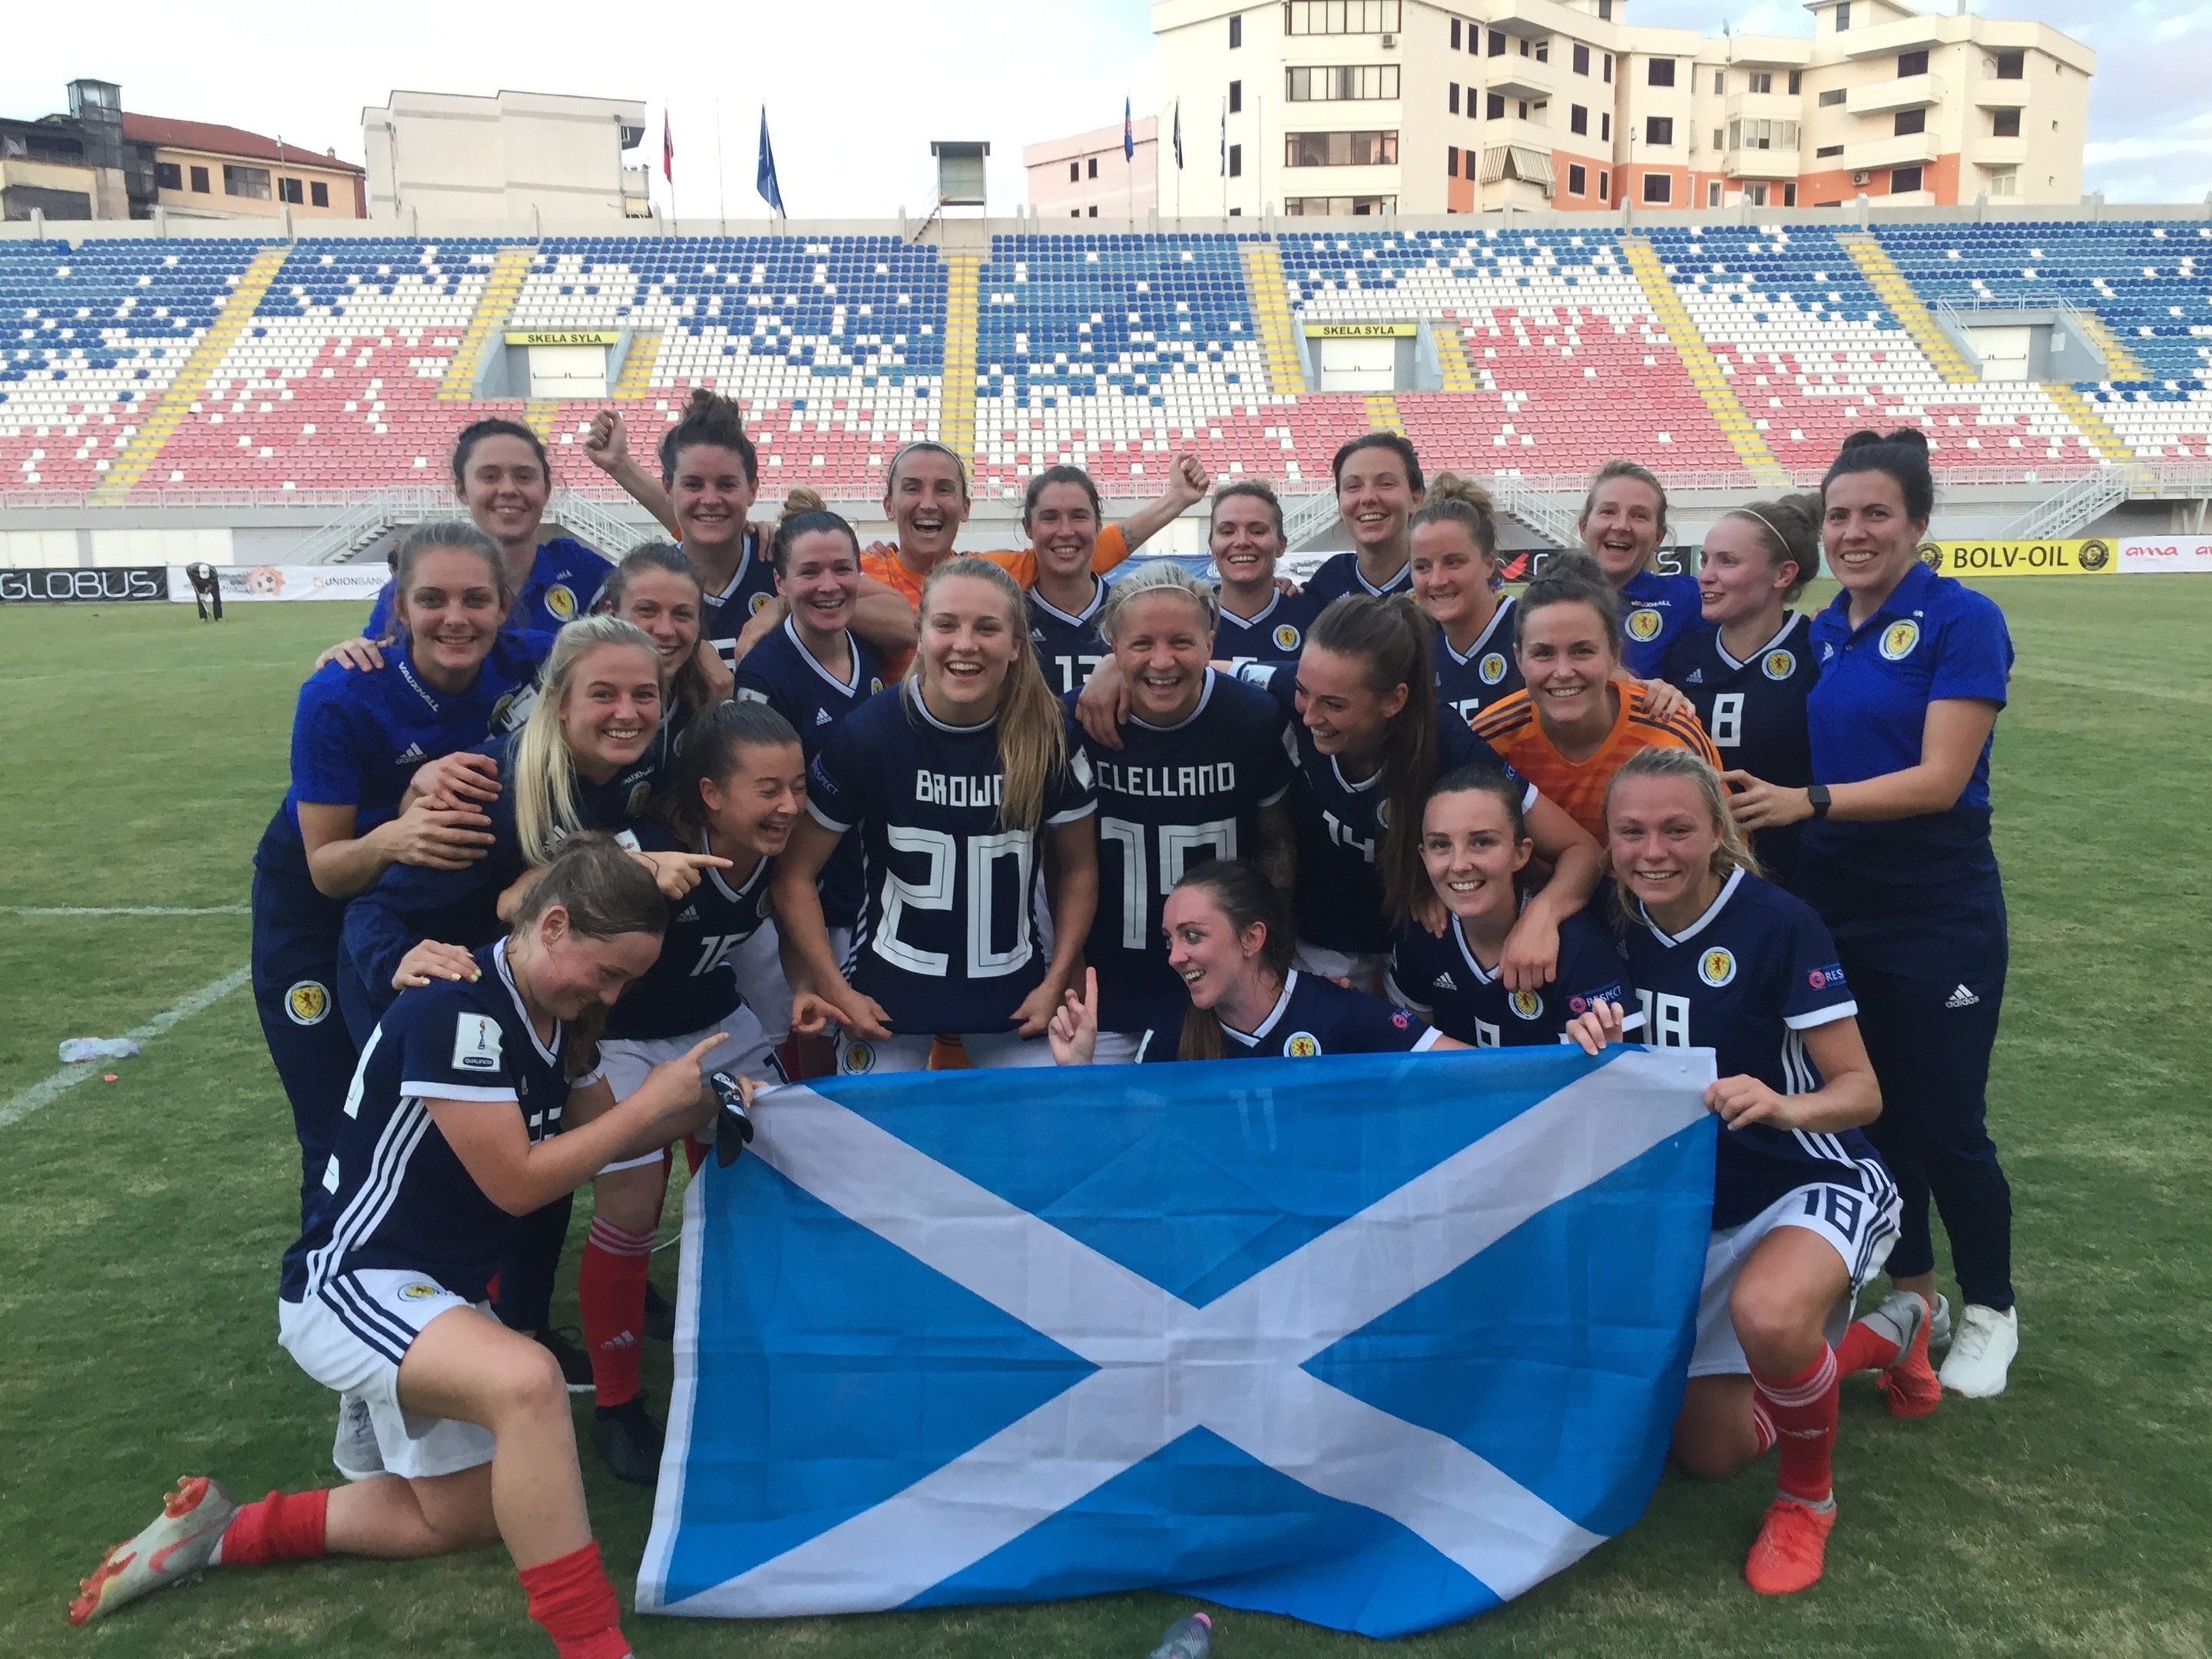 Scotland's win over Albania sent the women's team to the France 2019 World Cup (SFA)